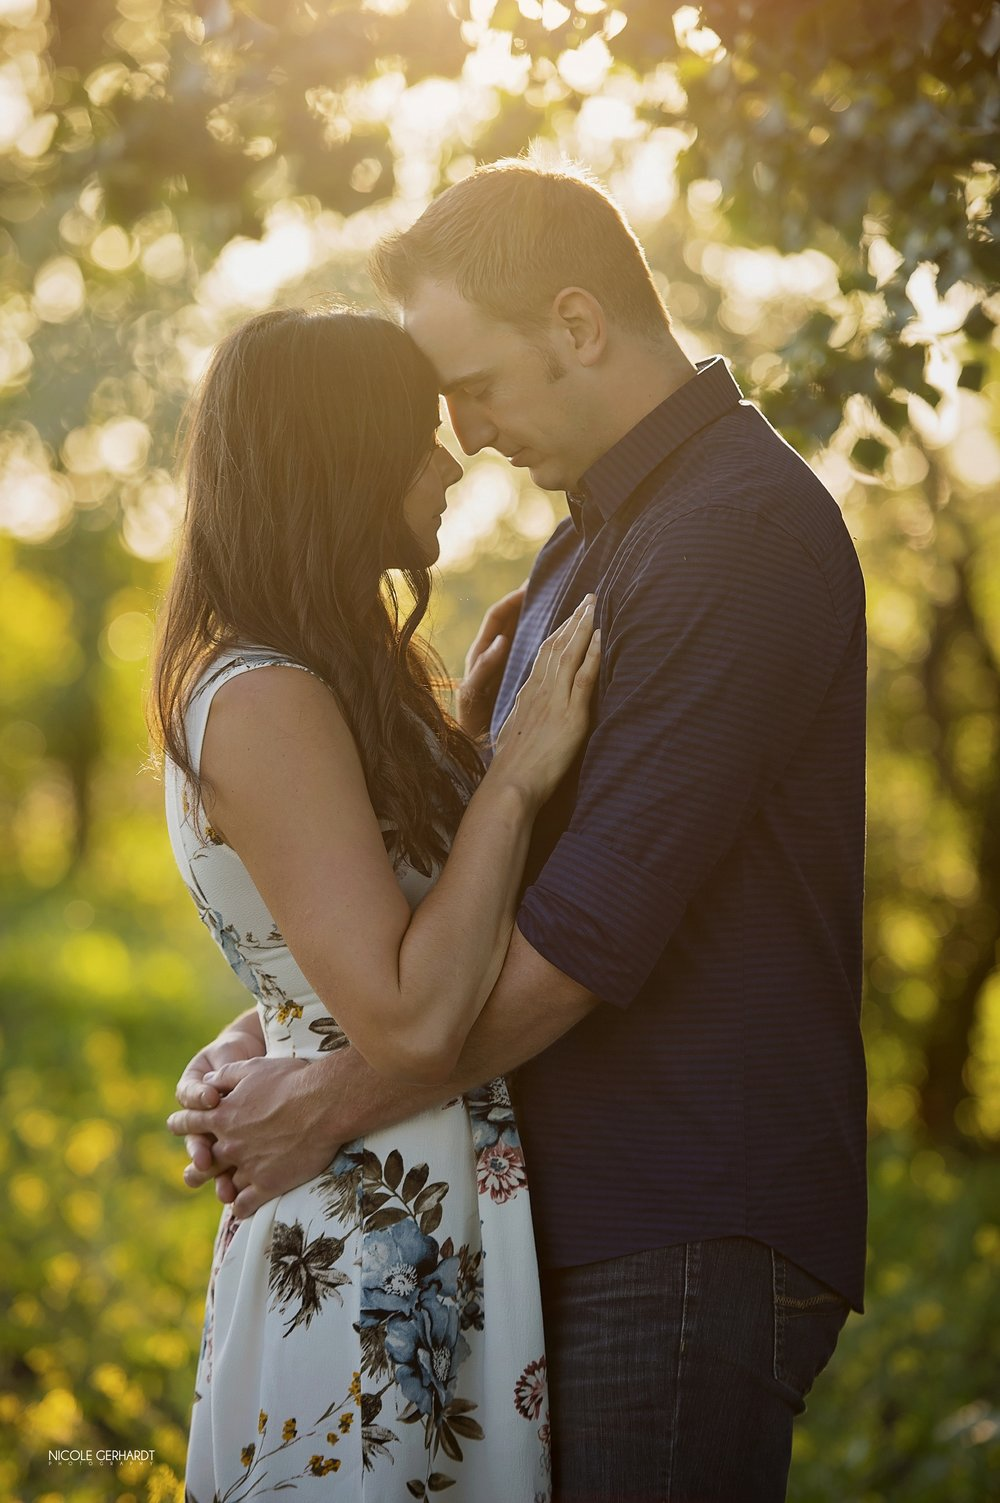 regina_engagement_wedding_photographer8.jpg